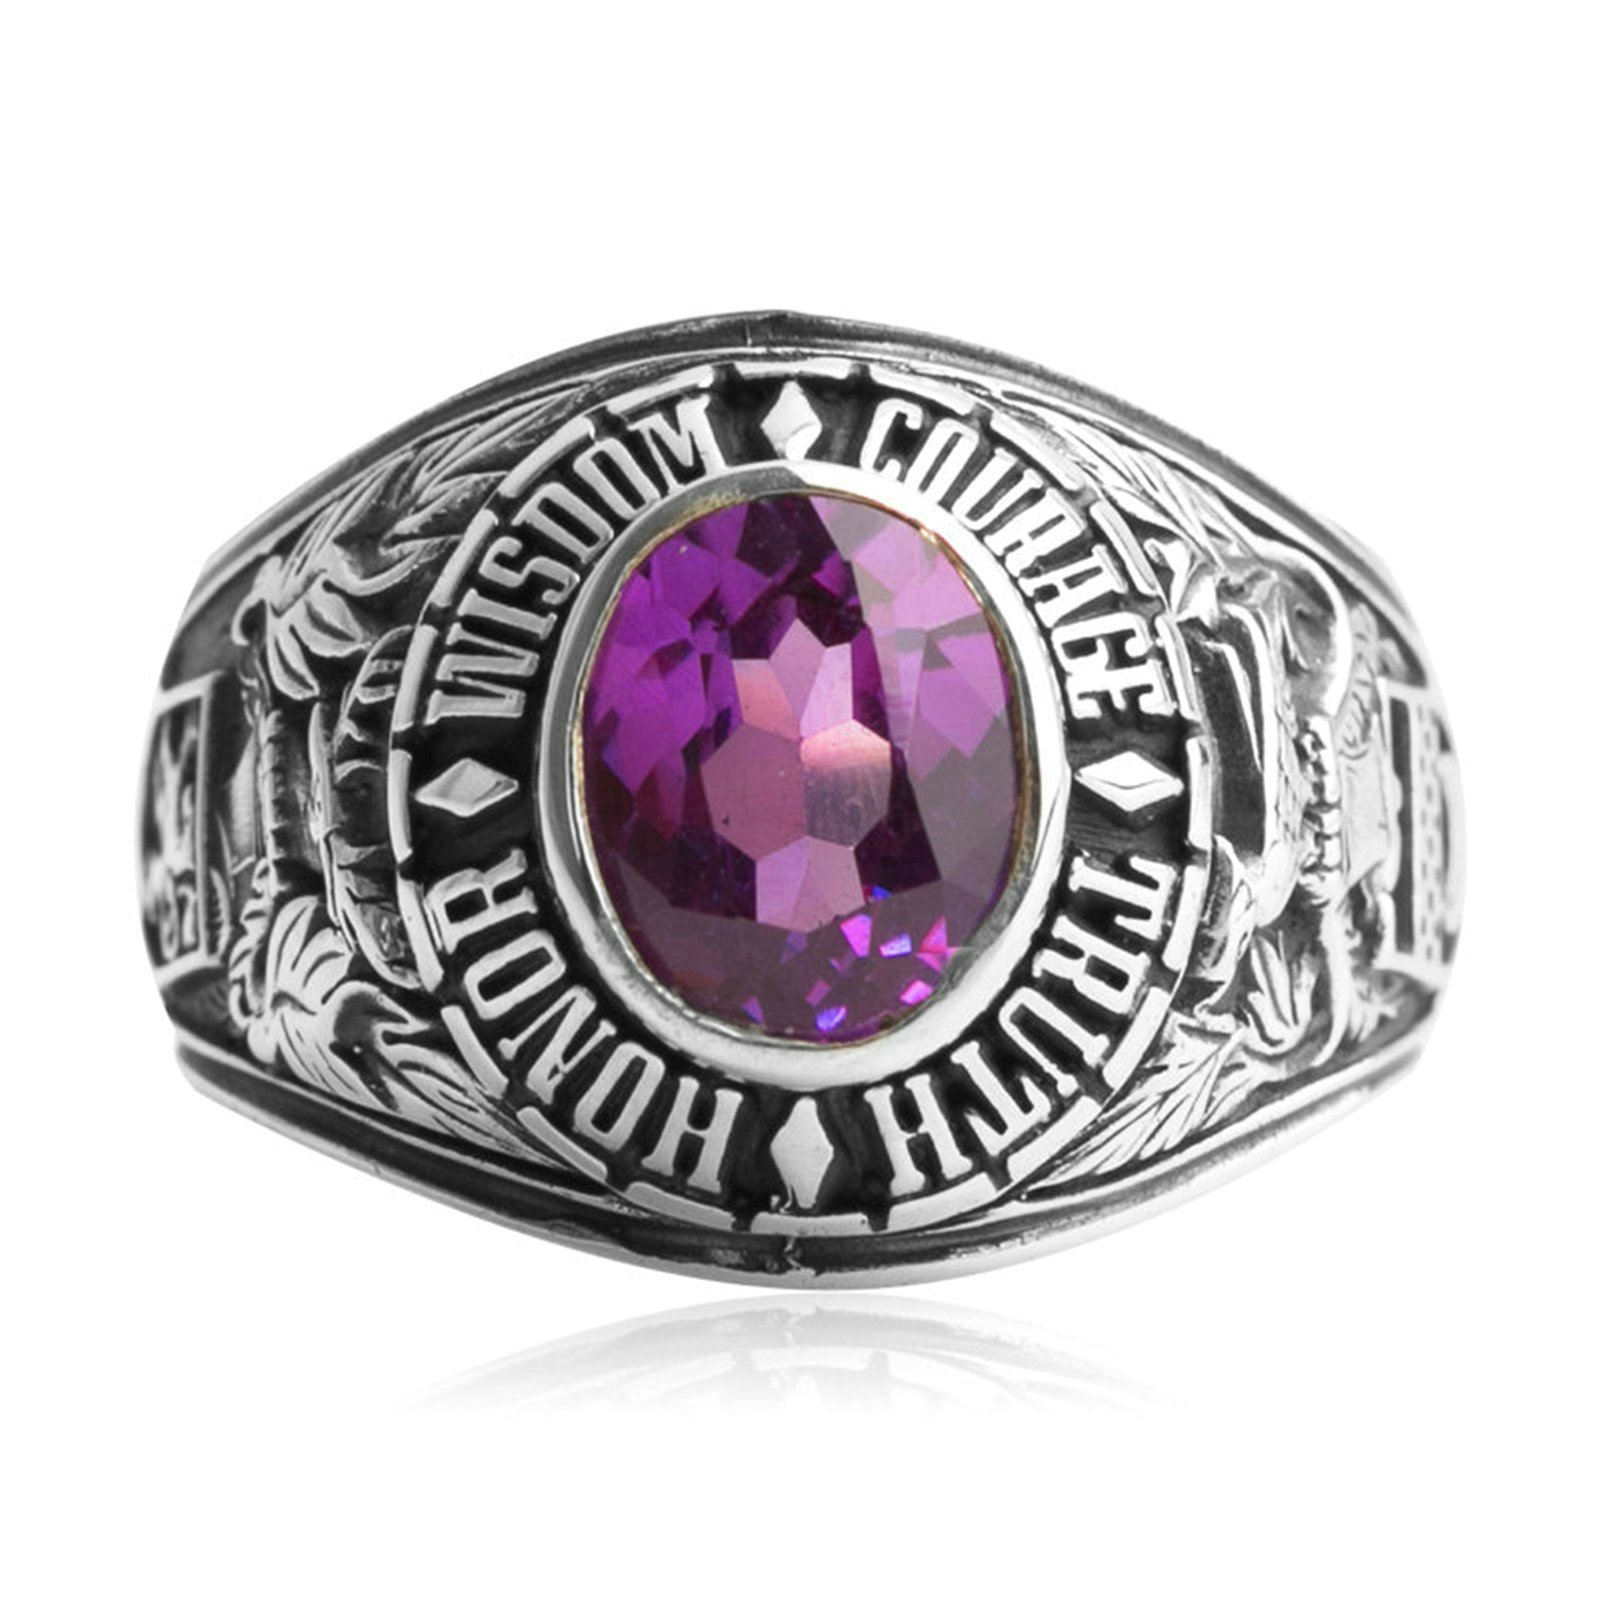 Anazoz S925 Sterling Silver Retro Style Punk Gothic Biker Purple Zirconia Men Rings Size 9 by AnaZoz